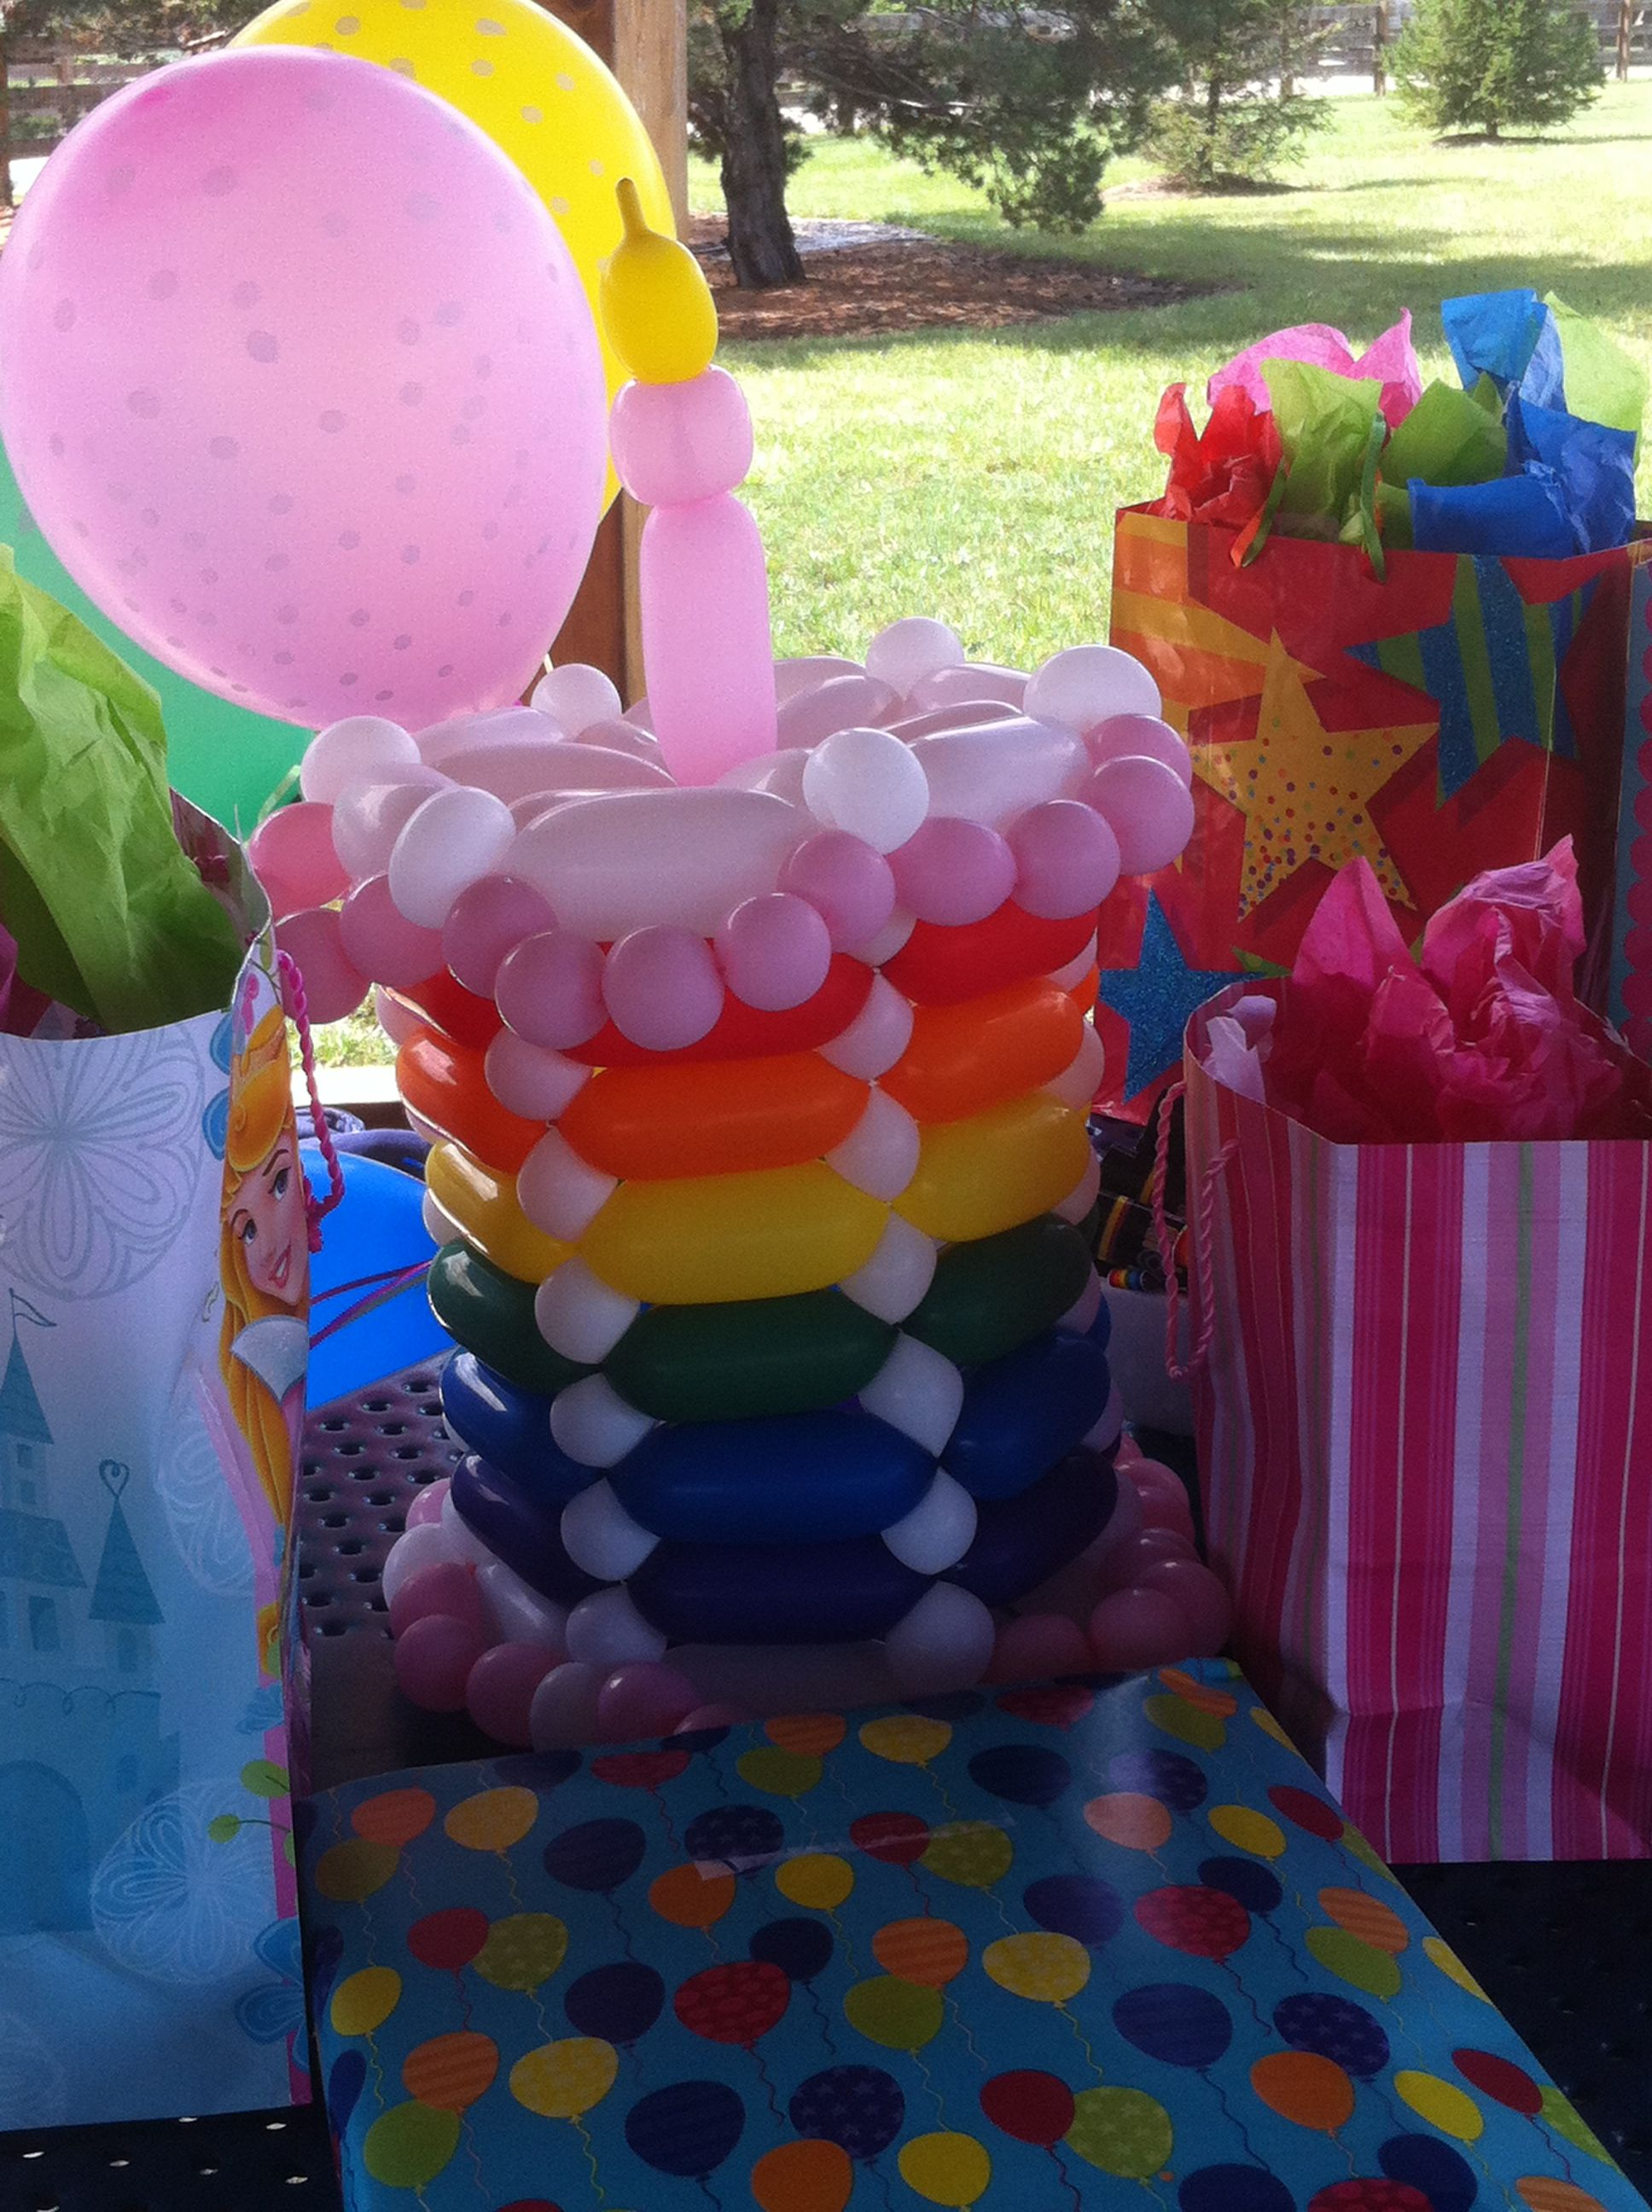 Balloon Rainbow Birthday Cake Balloon Sculptures